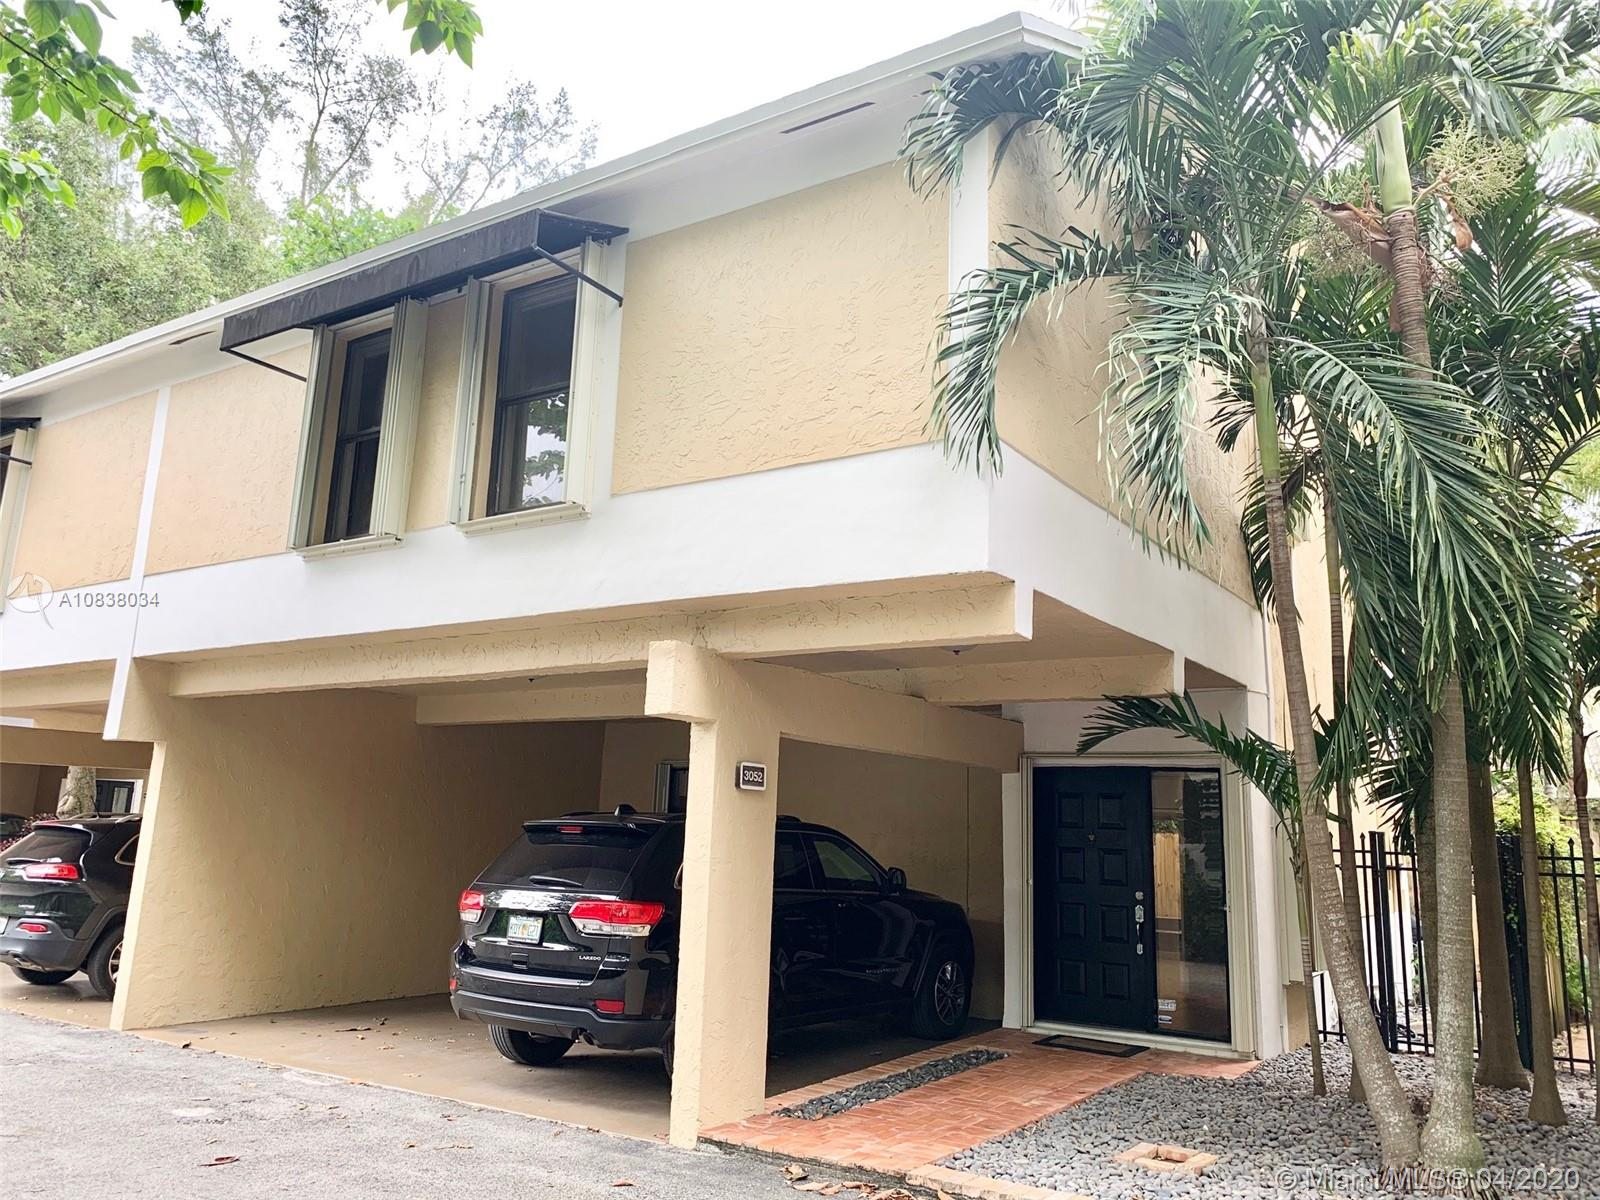 This is Coconut Grove at its most charming! Beautifully updated townhouse located in the heart of Coconut Grove across from Blanche Park. Private, very quiet gated community of ten townhouses in a cul-de-sac. High ceiling with expansive windows brings in light from the beautiful private terrace perfect for entertaining and barbecuing. Living room features 48X48 tile with white bamboo flooring in the bedrooms. Kraus kitchen sink, solid glass backsplash with quartz countertops & JennAir appliances, stone showers with imported contemporary SSWW German fixtures. Window treatments and lighting have also been updated. New roof, skylights & new exterior paint. 2 Assigned and covered parking space next to entrance of townhouse. Easy to show.